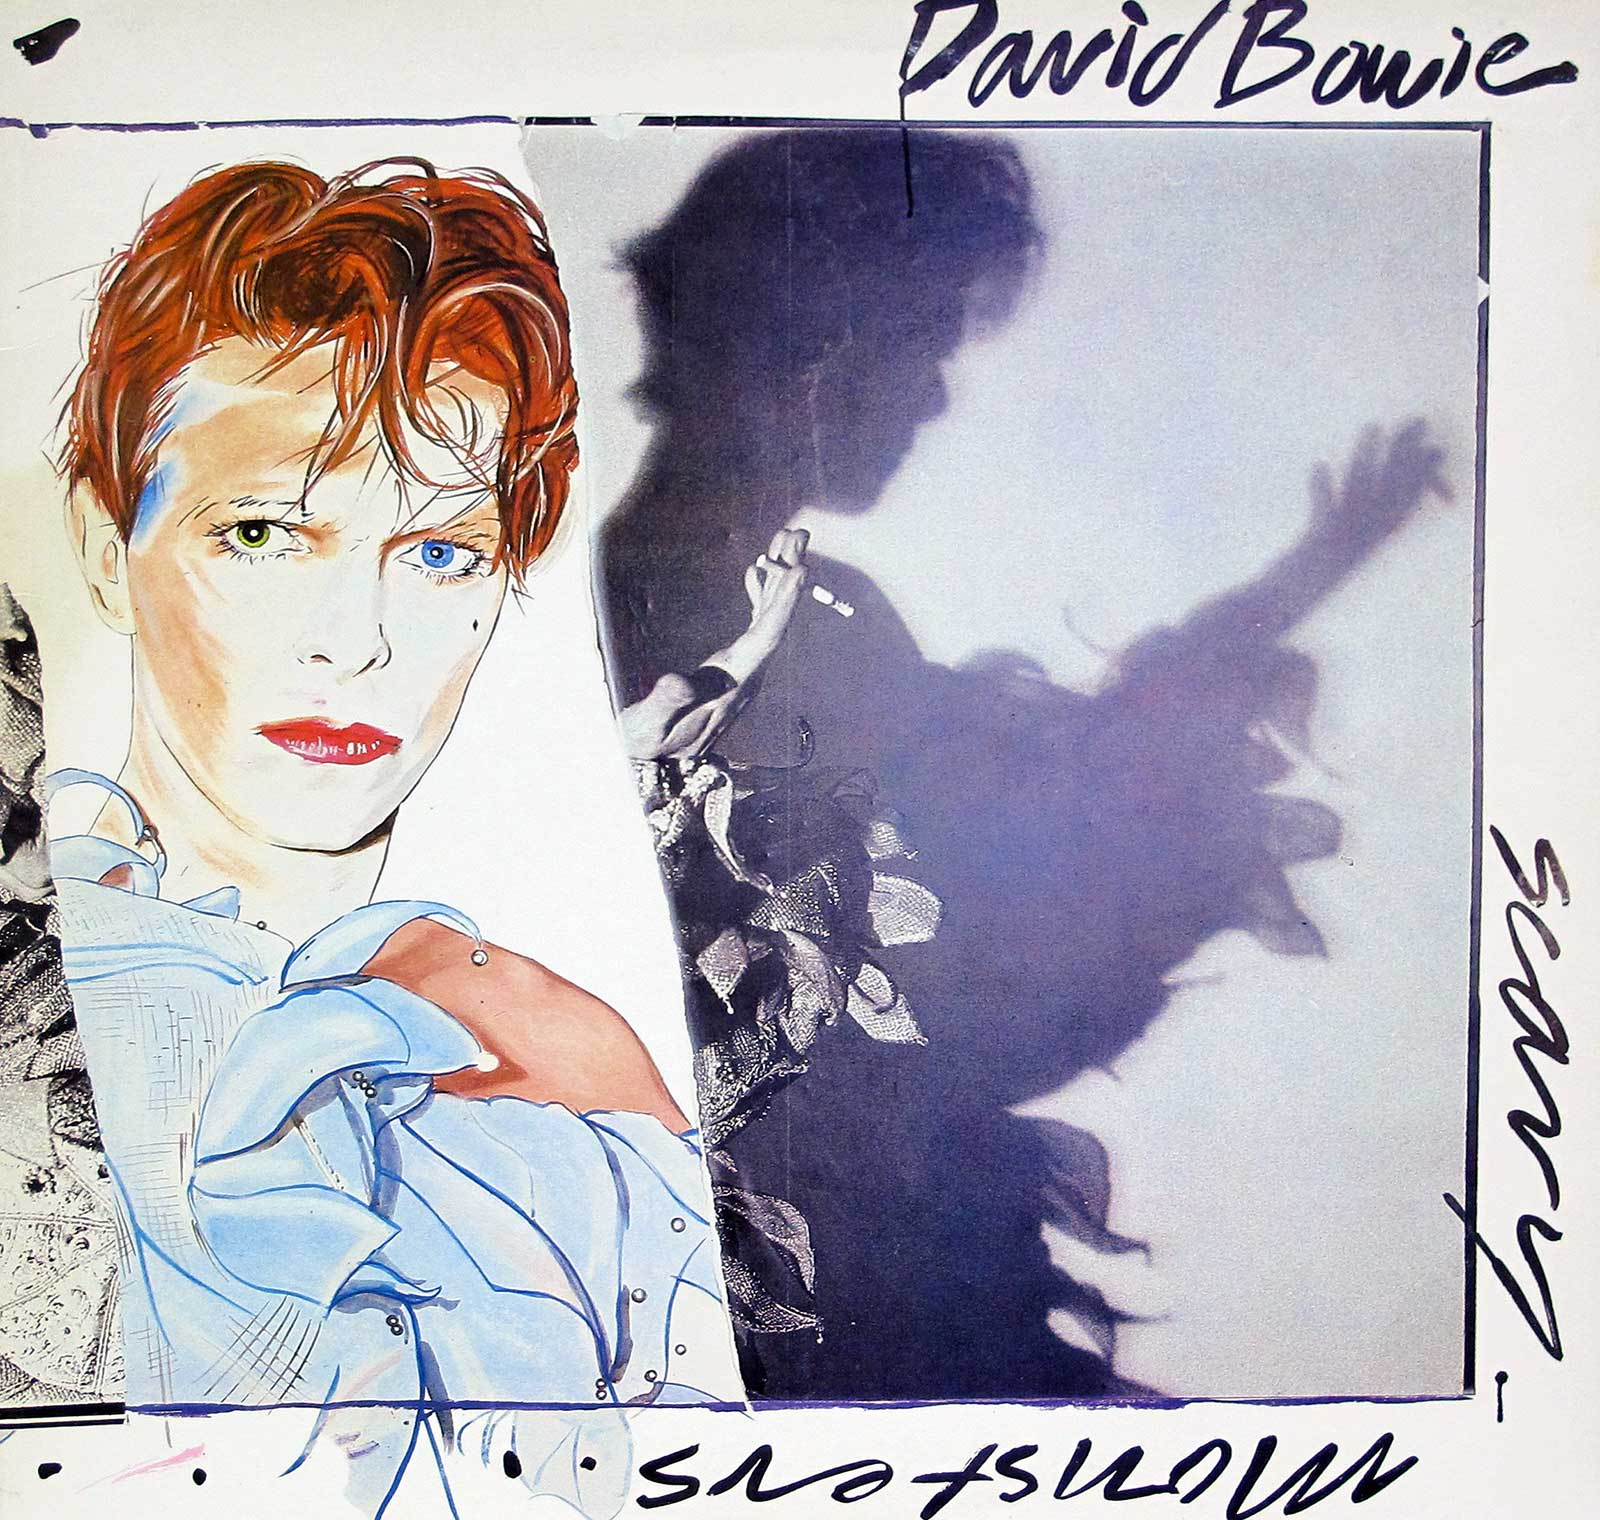 large photo of the album front cover of: Scary Monsters